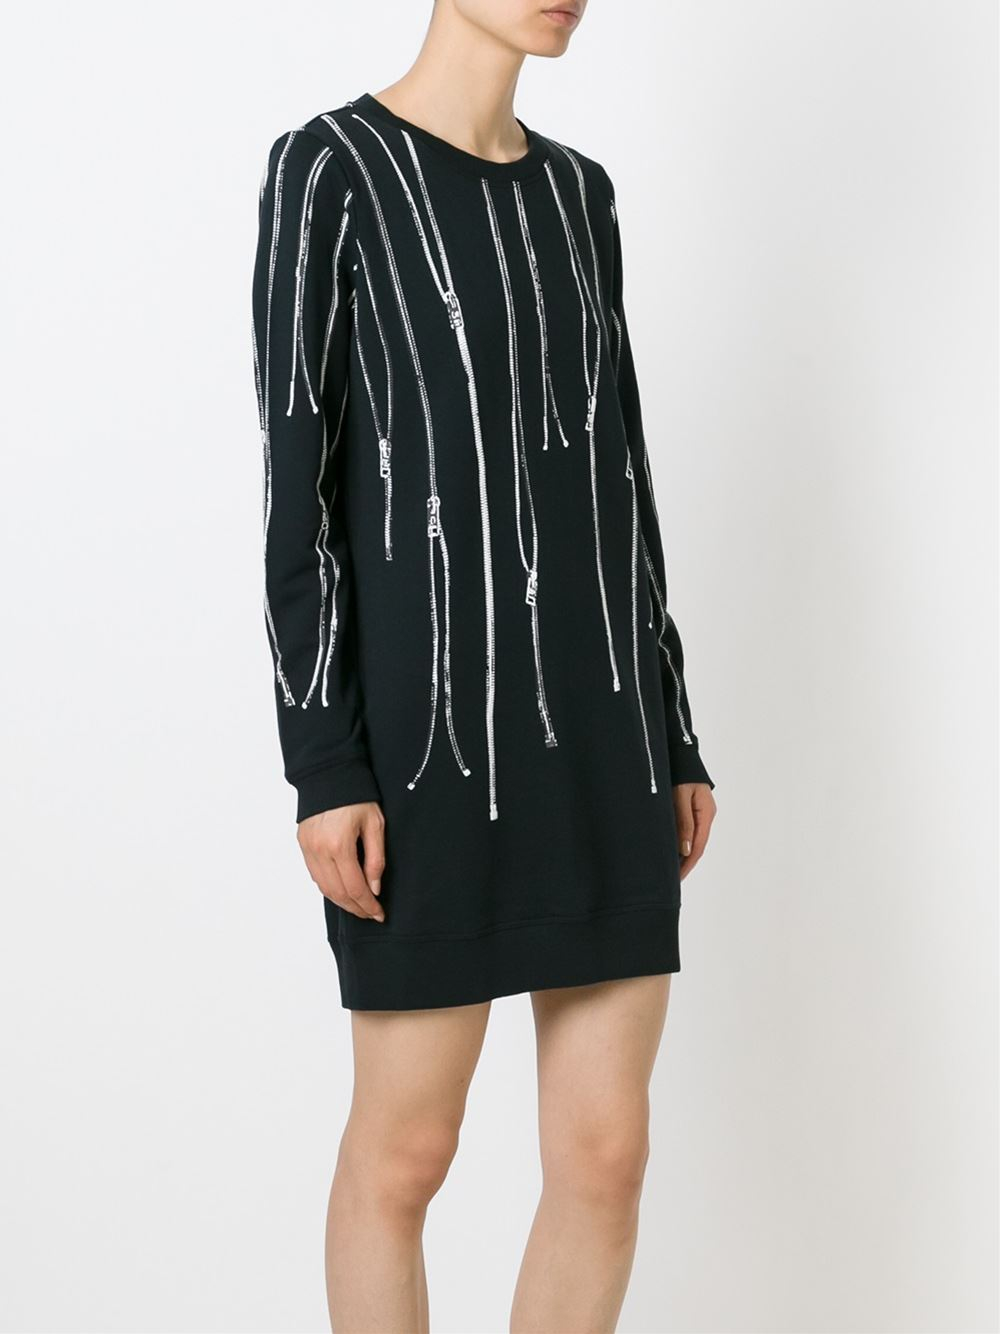 Diesel D Dial H Sweatshirt Dress In Black Lyst